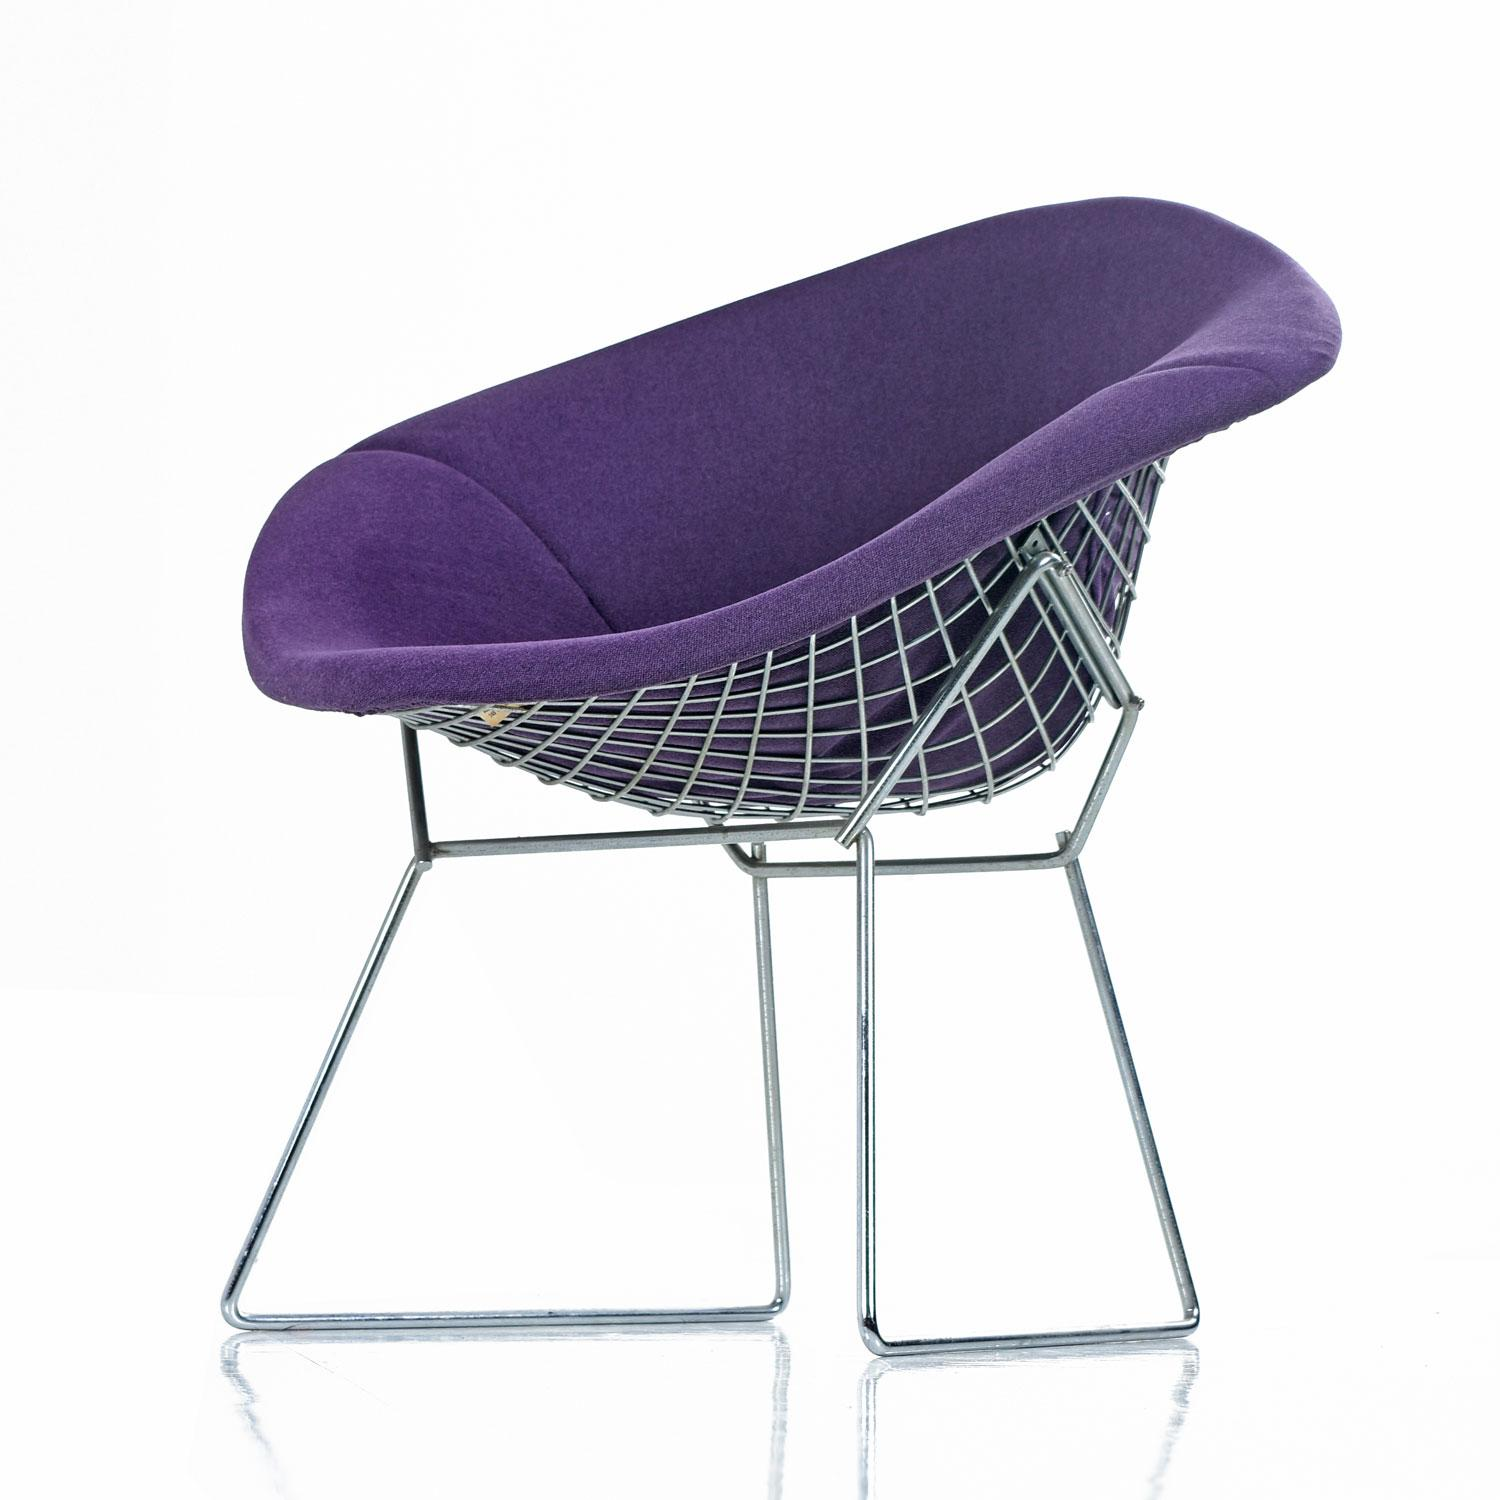 Ordinaire Restored Diamond Chair By Harry Bertoia For Knoll, Full Cover Plum Knoll  Tweed For Sale At 1stdibs